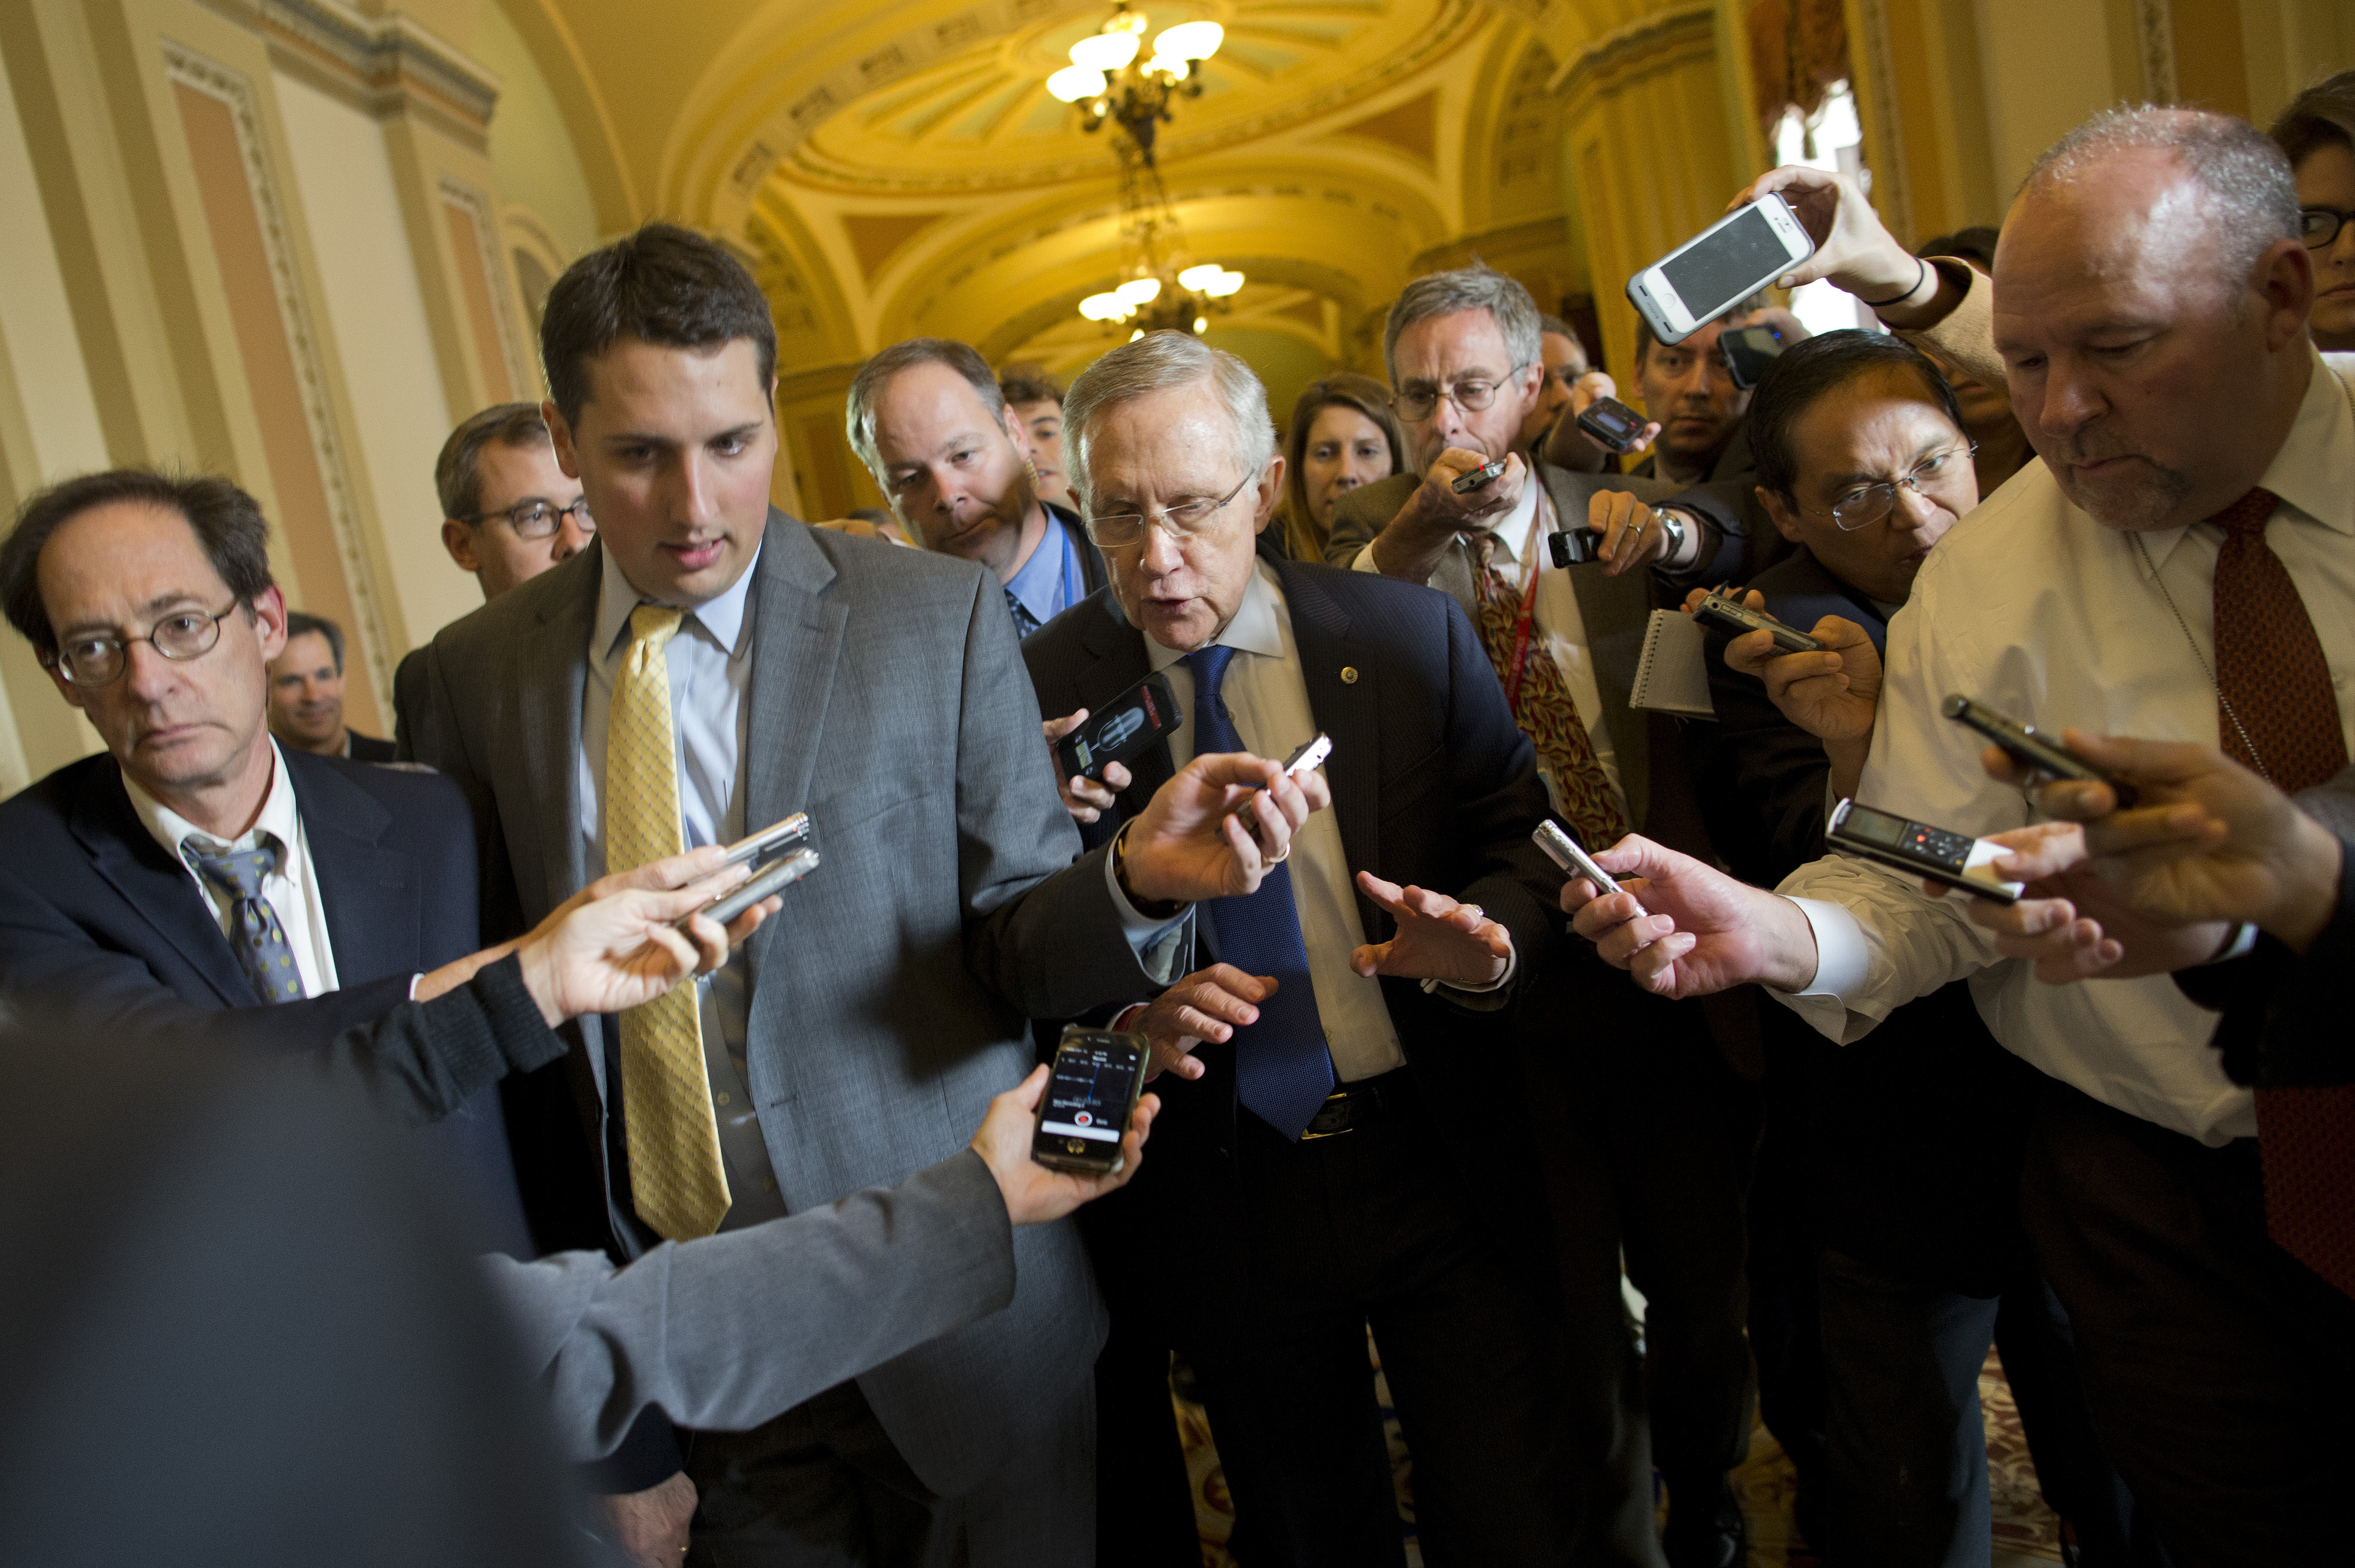 Senate Majority Leader Sen. Harry Reid, D-Nev., is surrounded by reporters after leaving the office of Senate Minority Leader Sen. Mitch McConnell, R-Ky., on Capitol Hill on Monday.